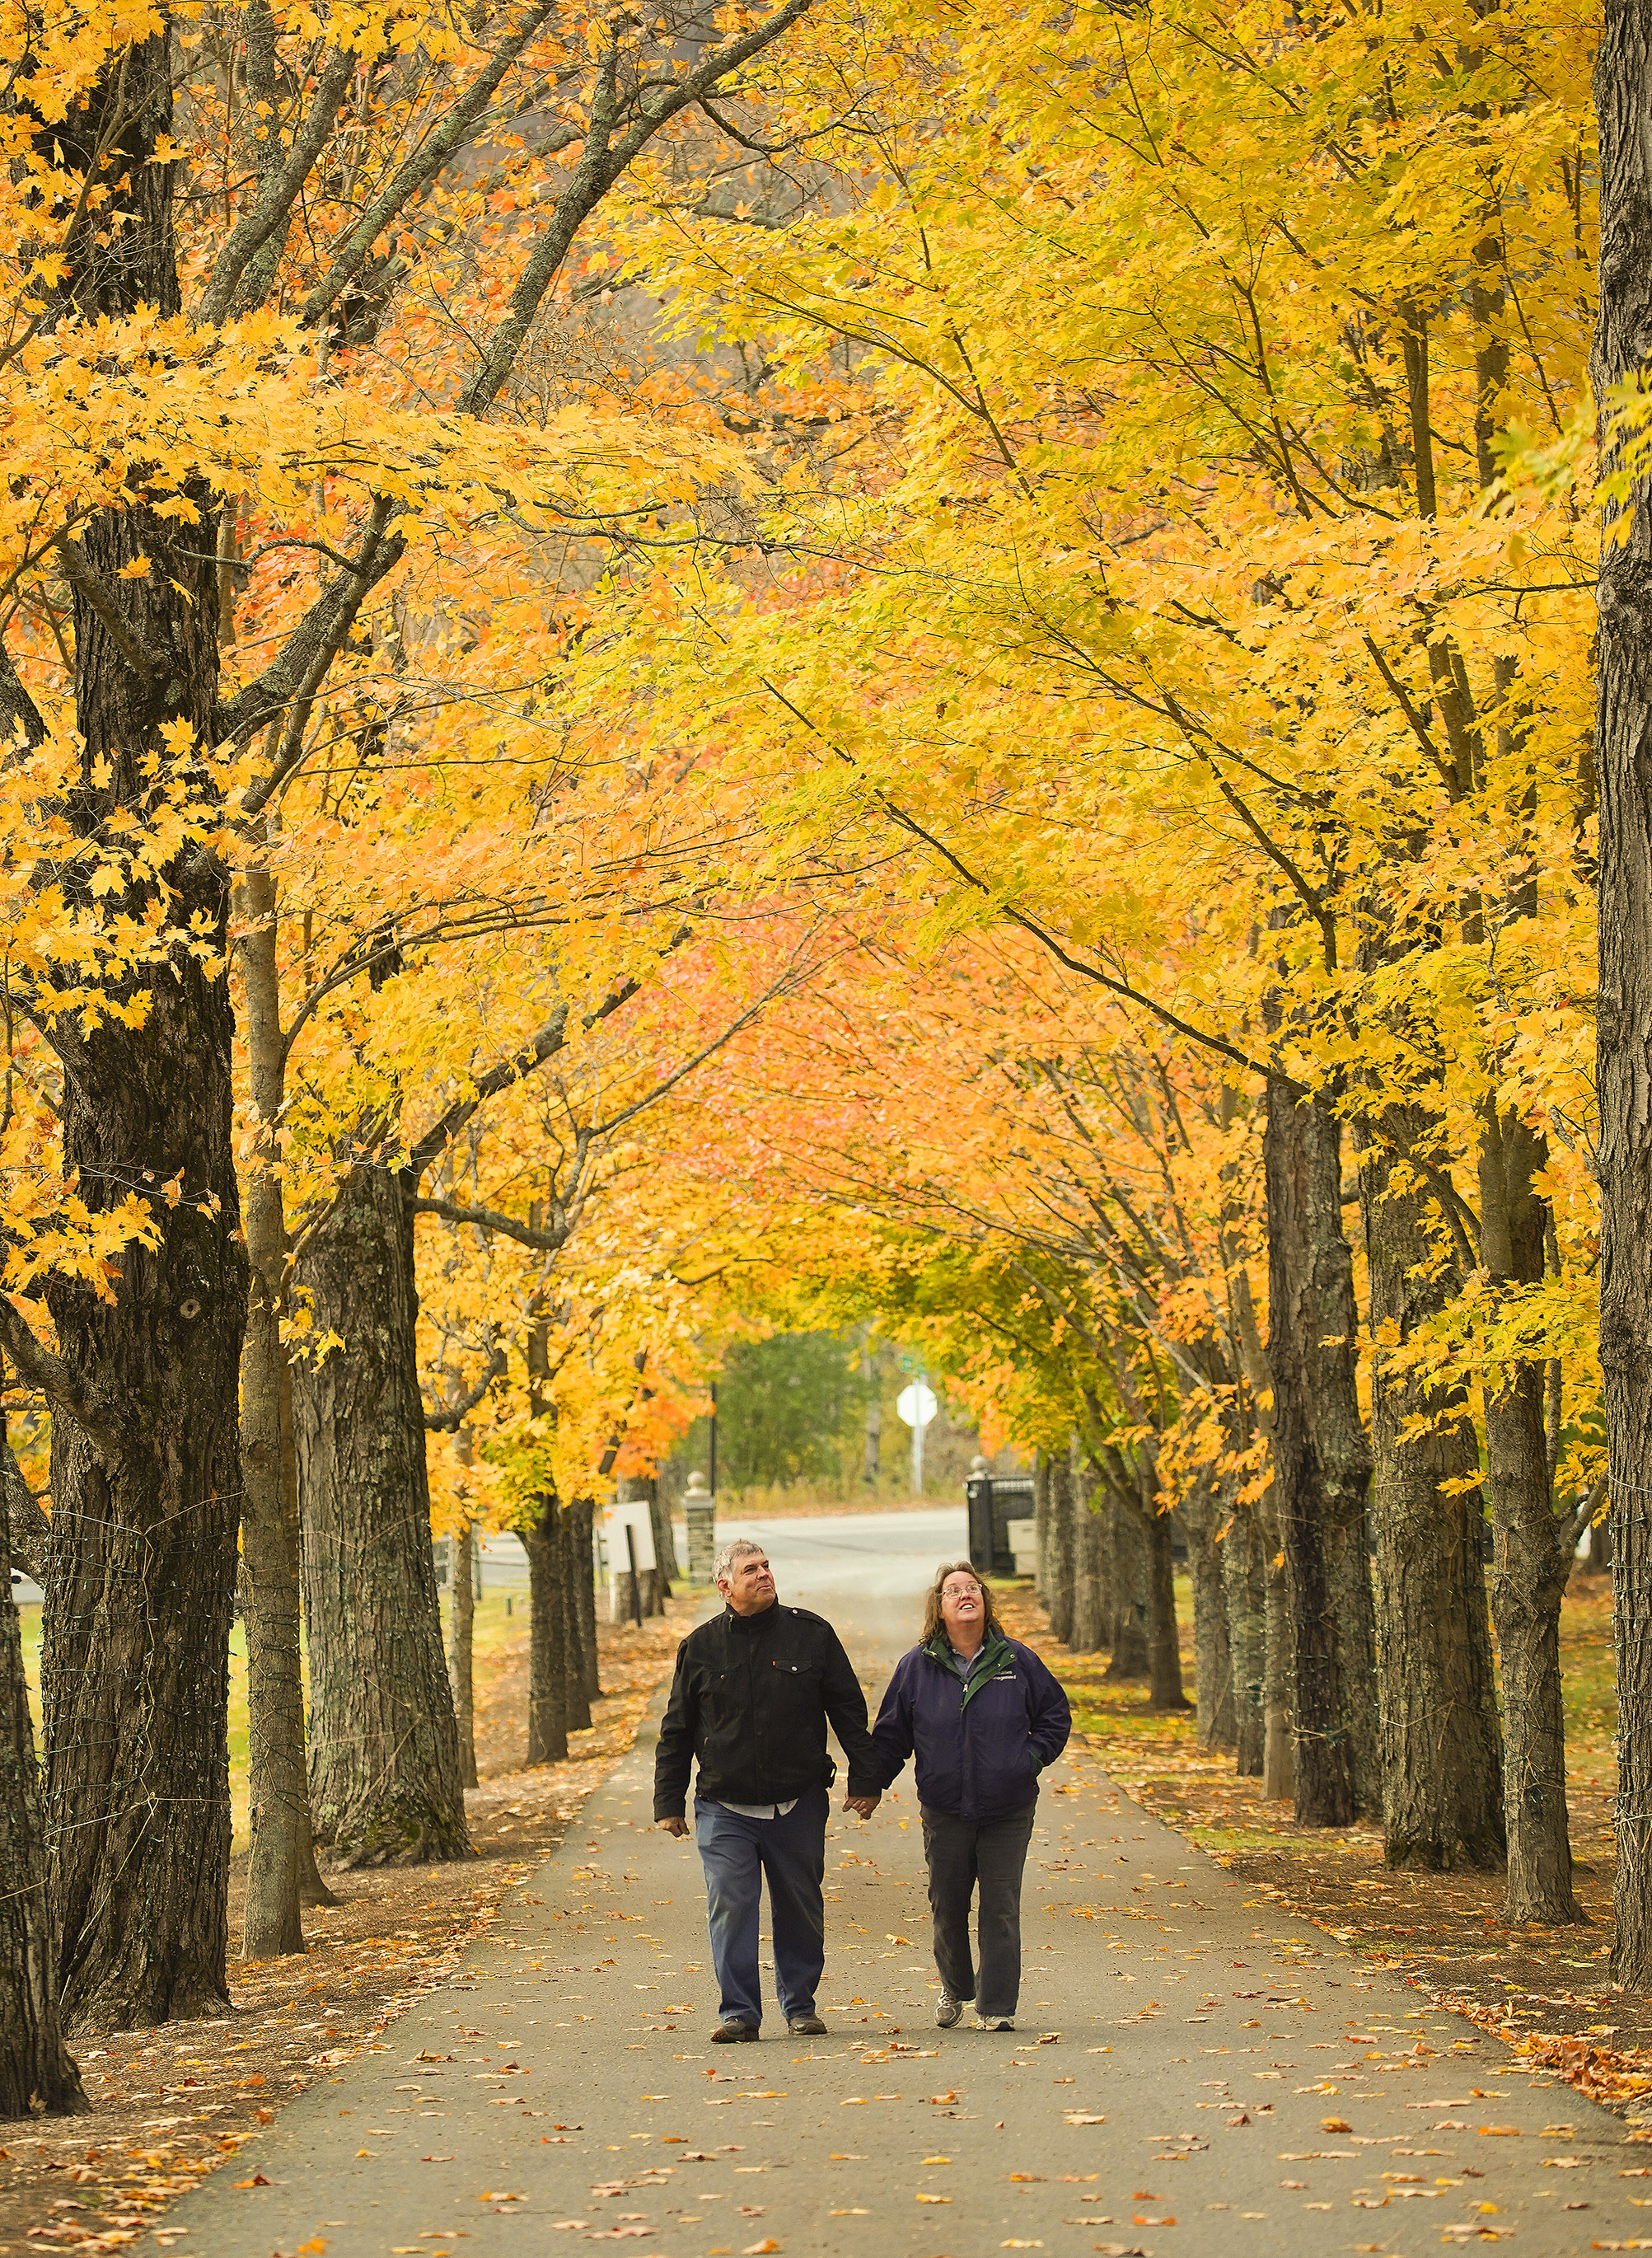 Missionaries Larry and Cathy McKnight walk in the Fall colors near Sharon, Vermont on Friday, Oct. 18, 2019.